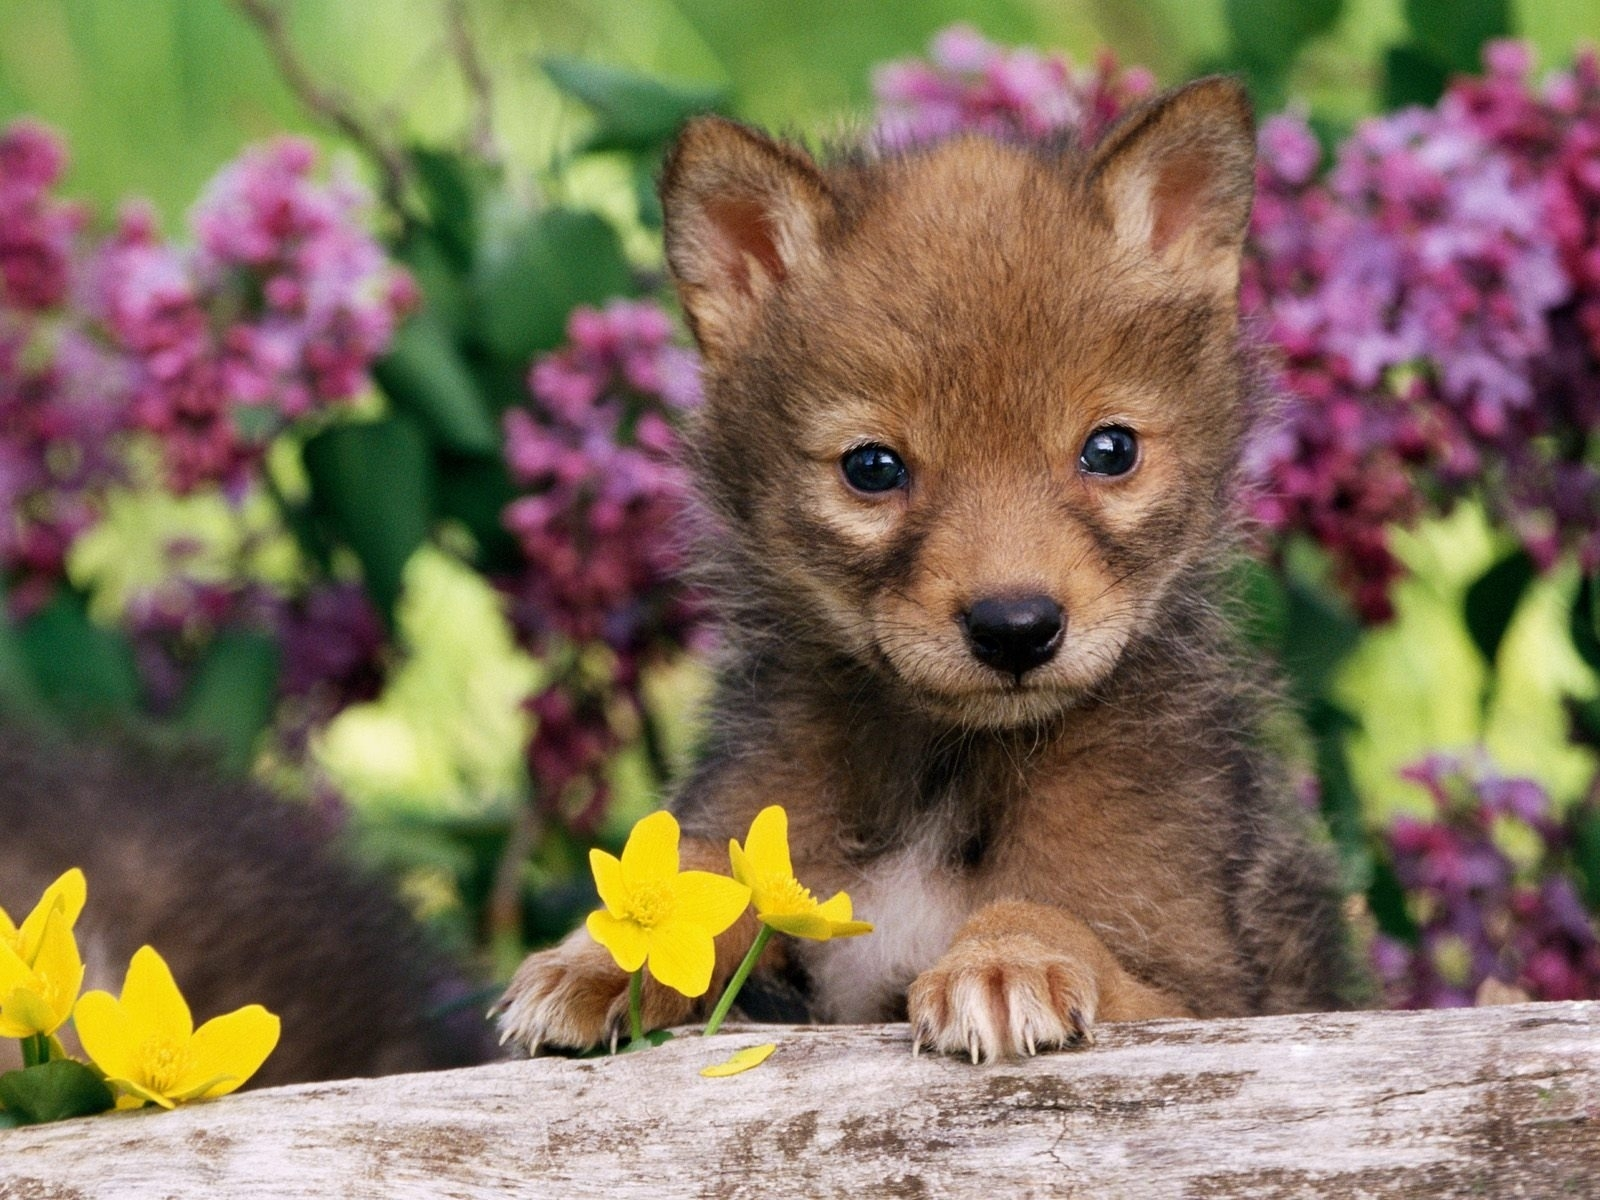 baby animals wallpapers for free download about (935) wallpapers.